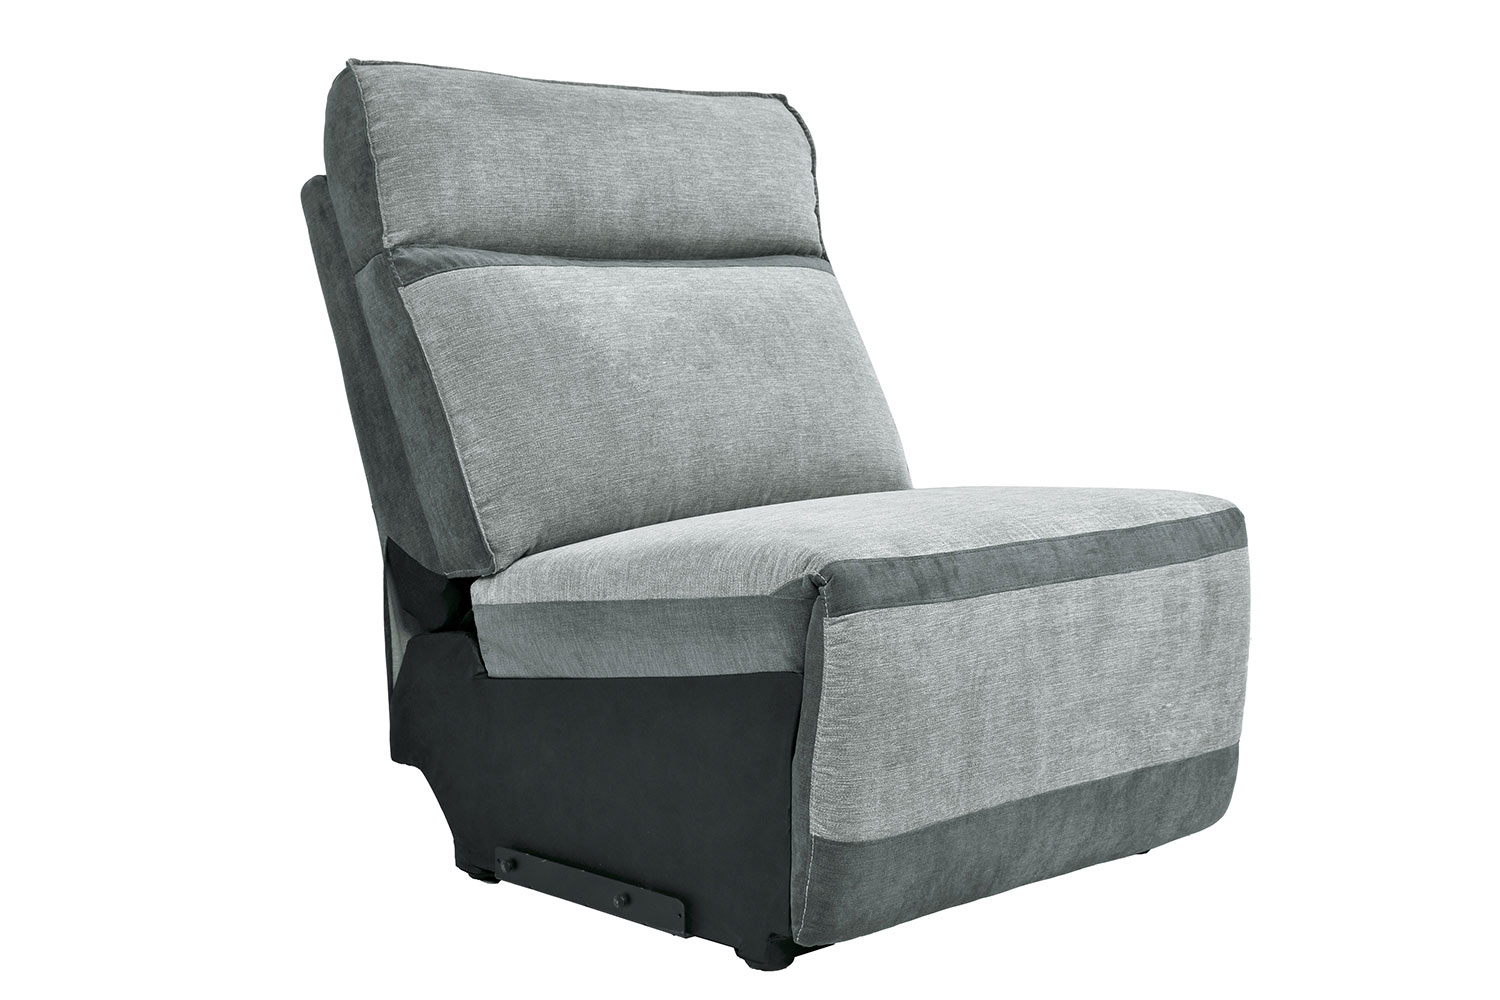 Homelegance Hedera Armless Chair - Gray